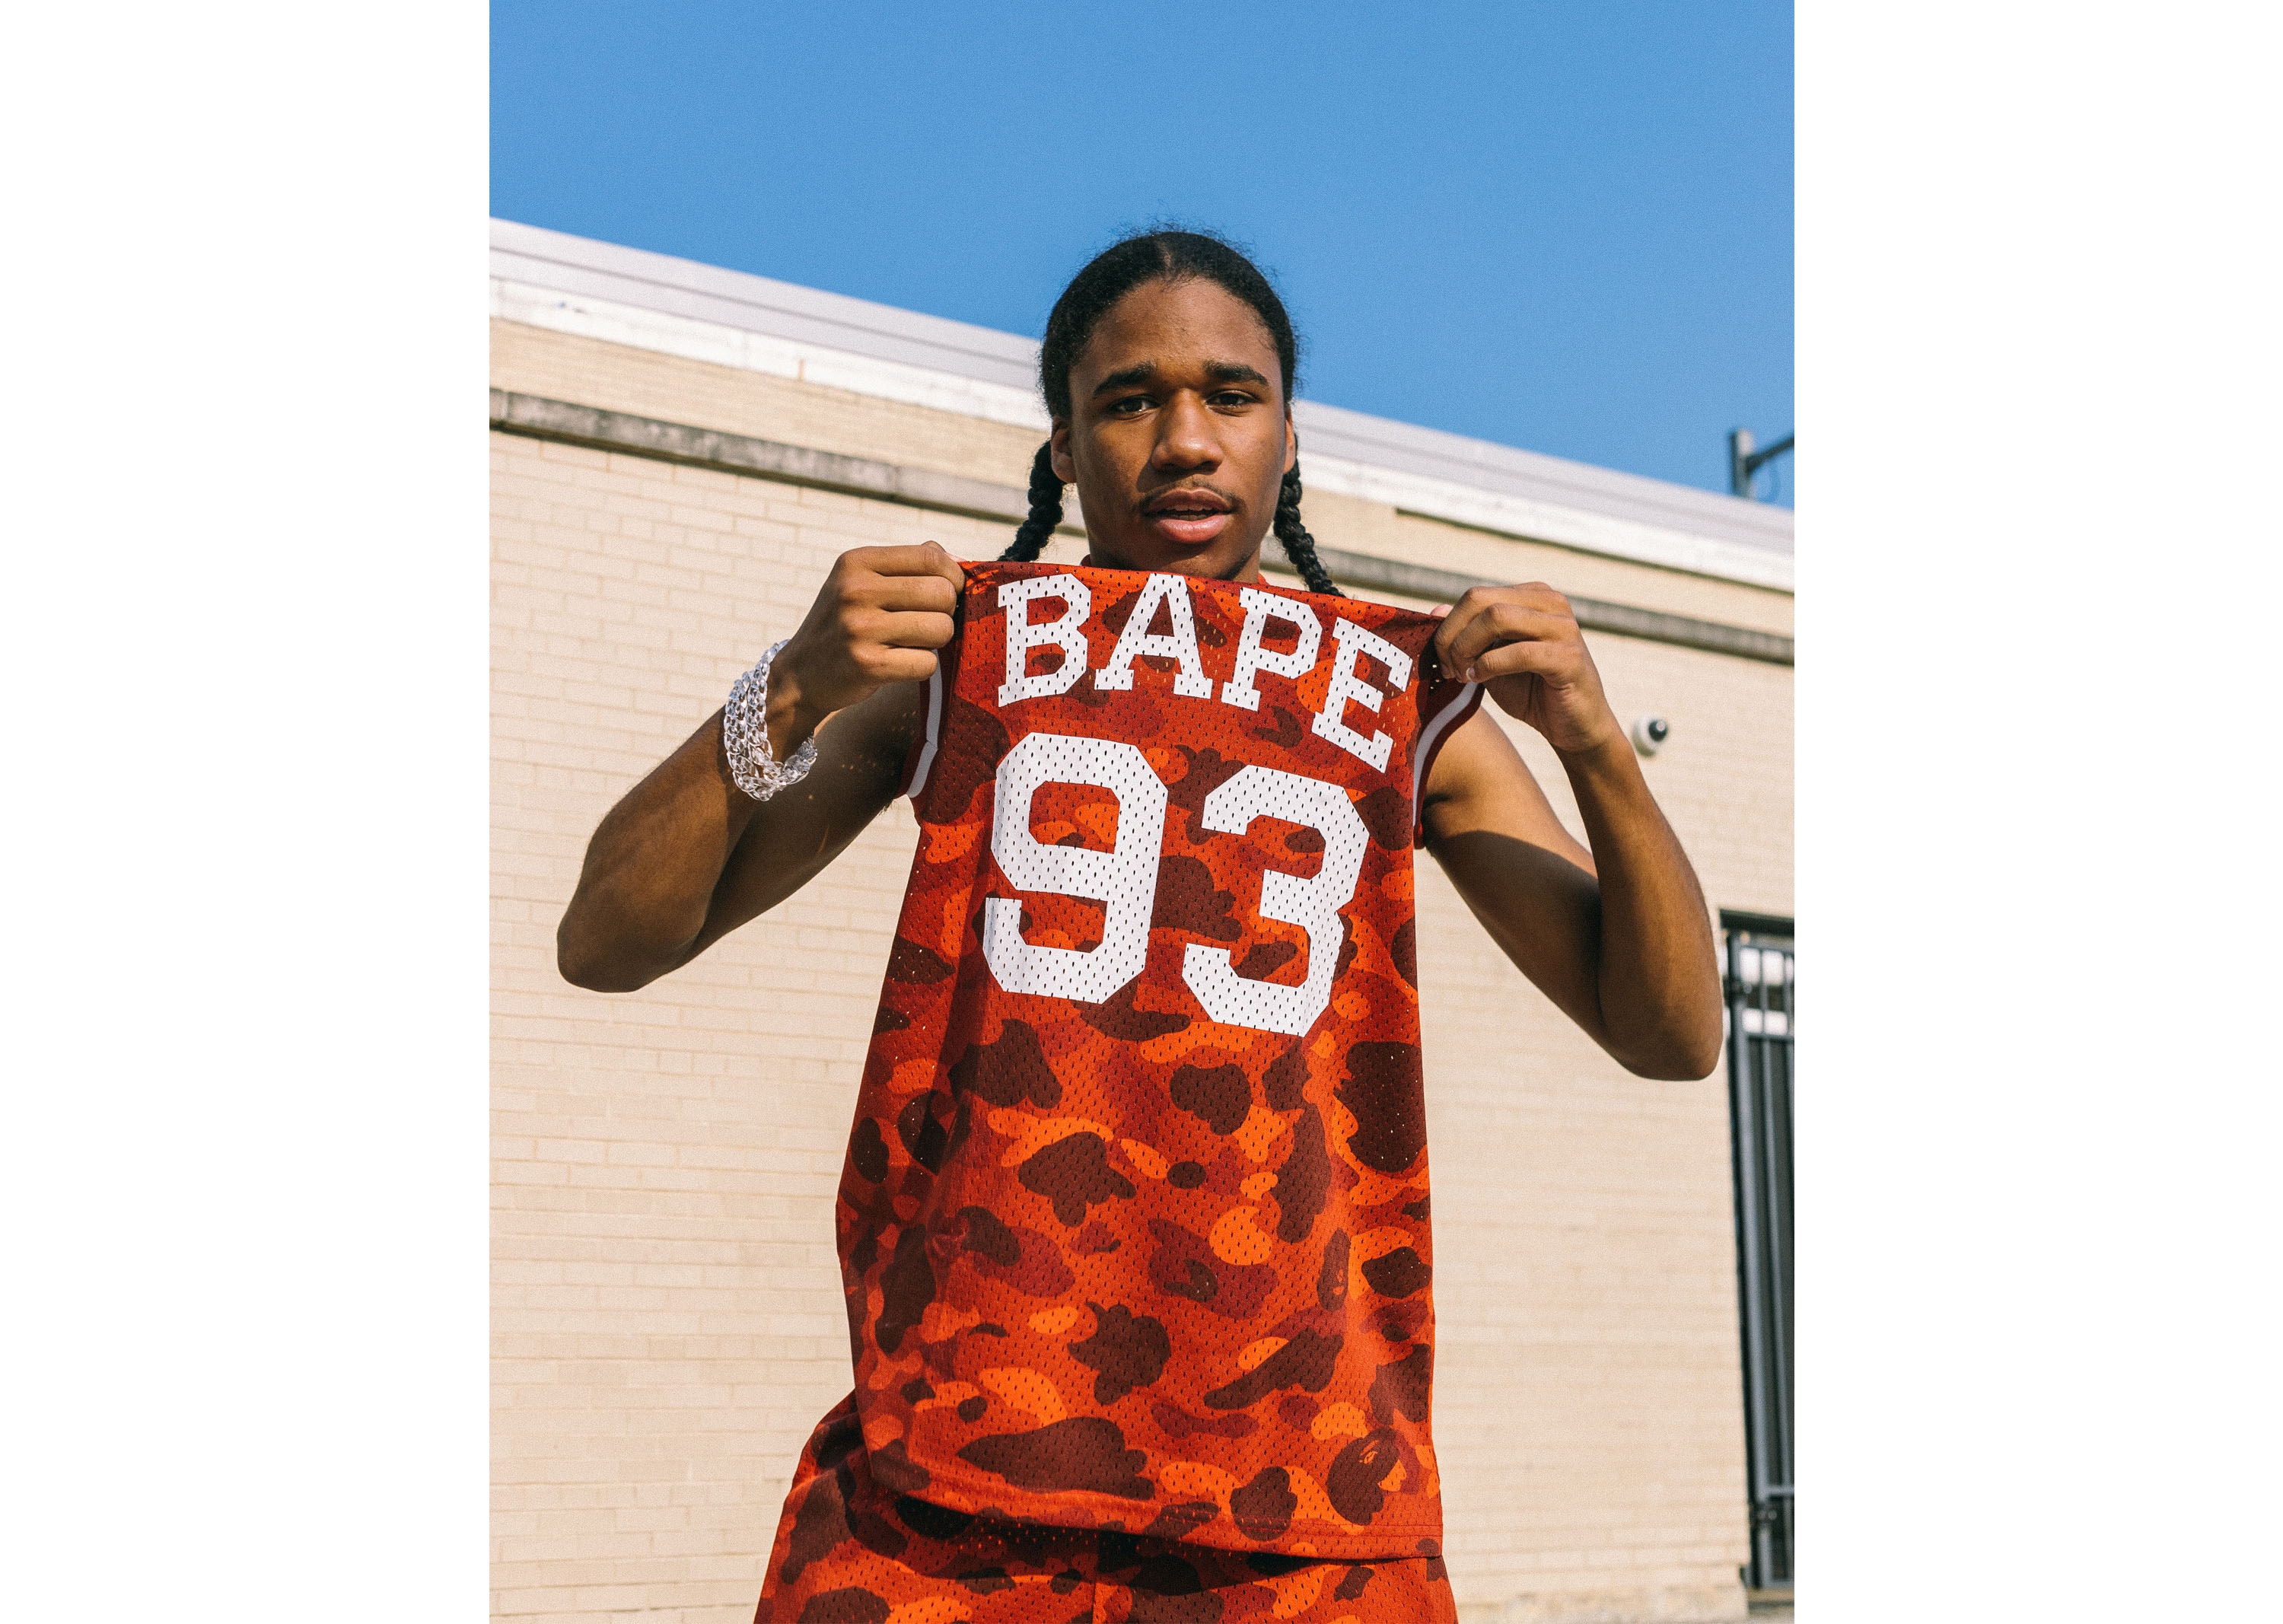 bape_0001_Layer 5